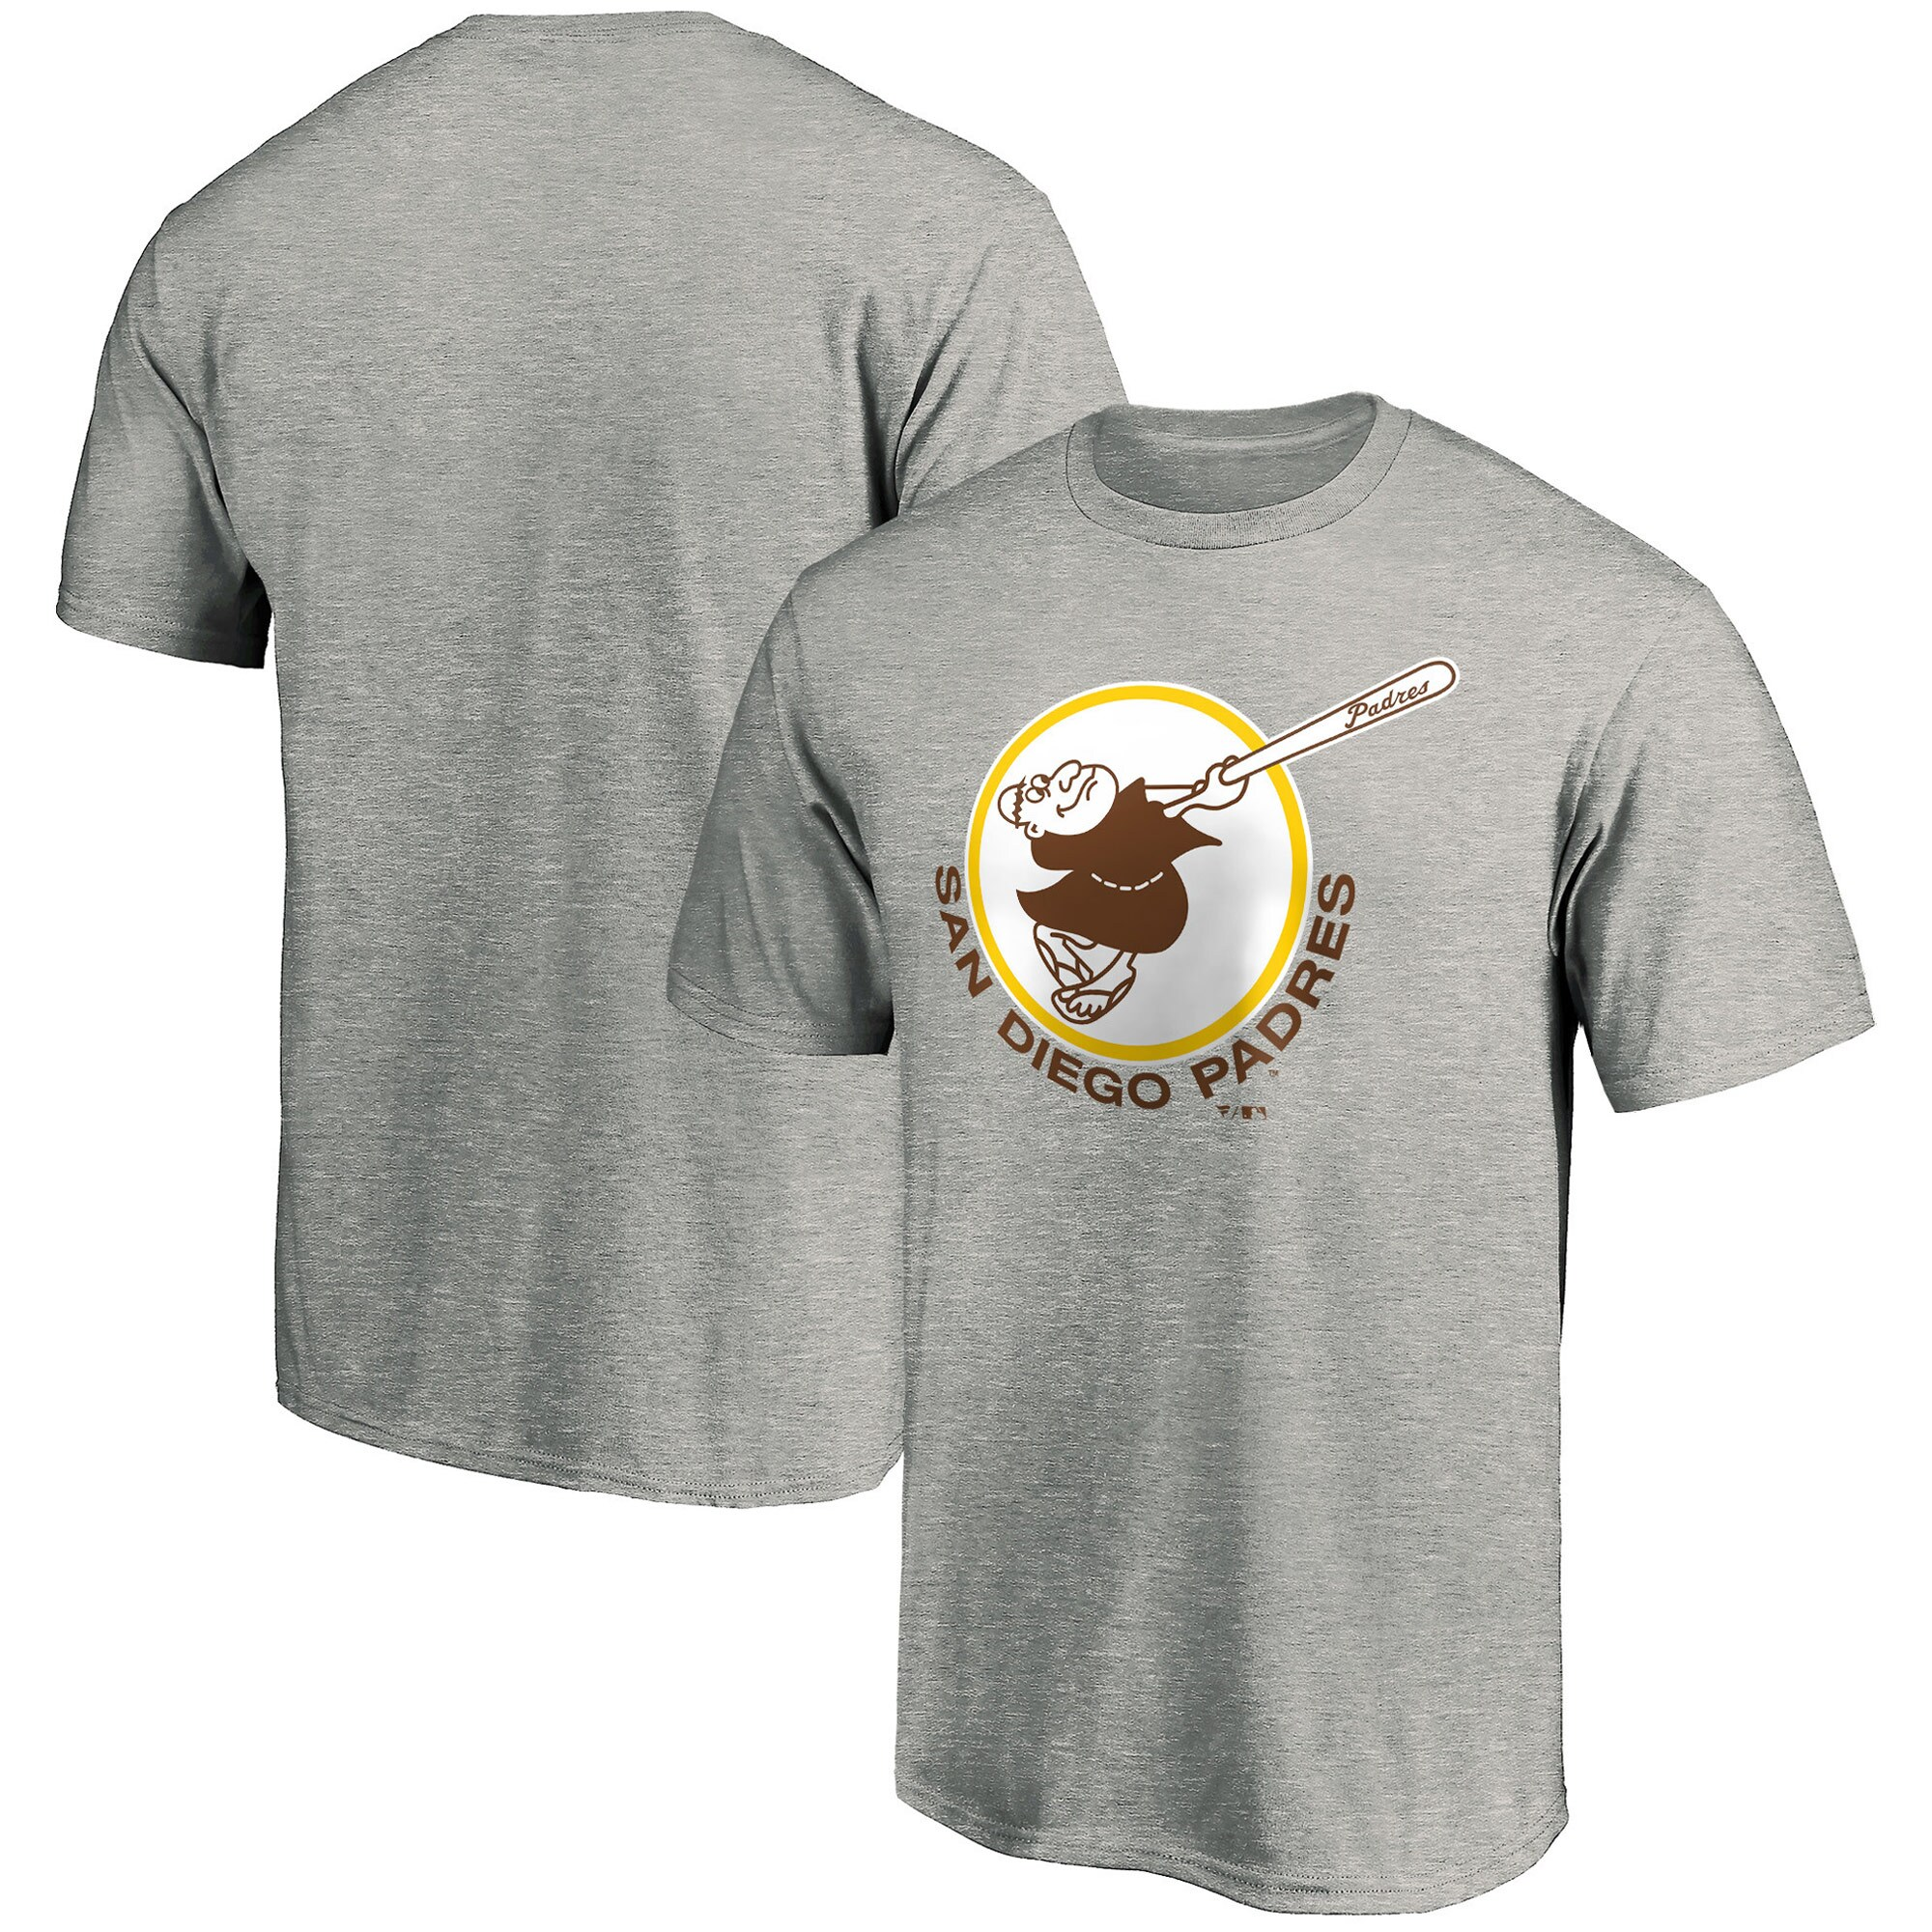 San Diego Padres Fanatics Branded Cooperstown Collection Forbes Team T-Shirt - Heathered Gray